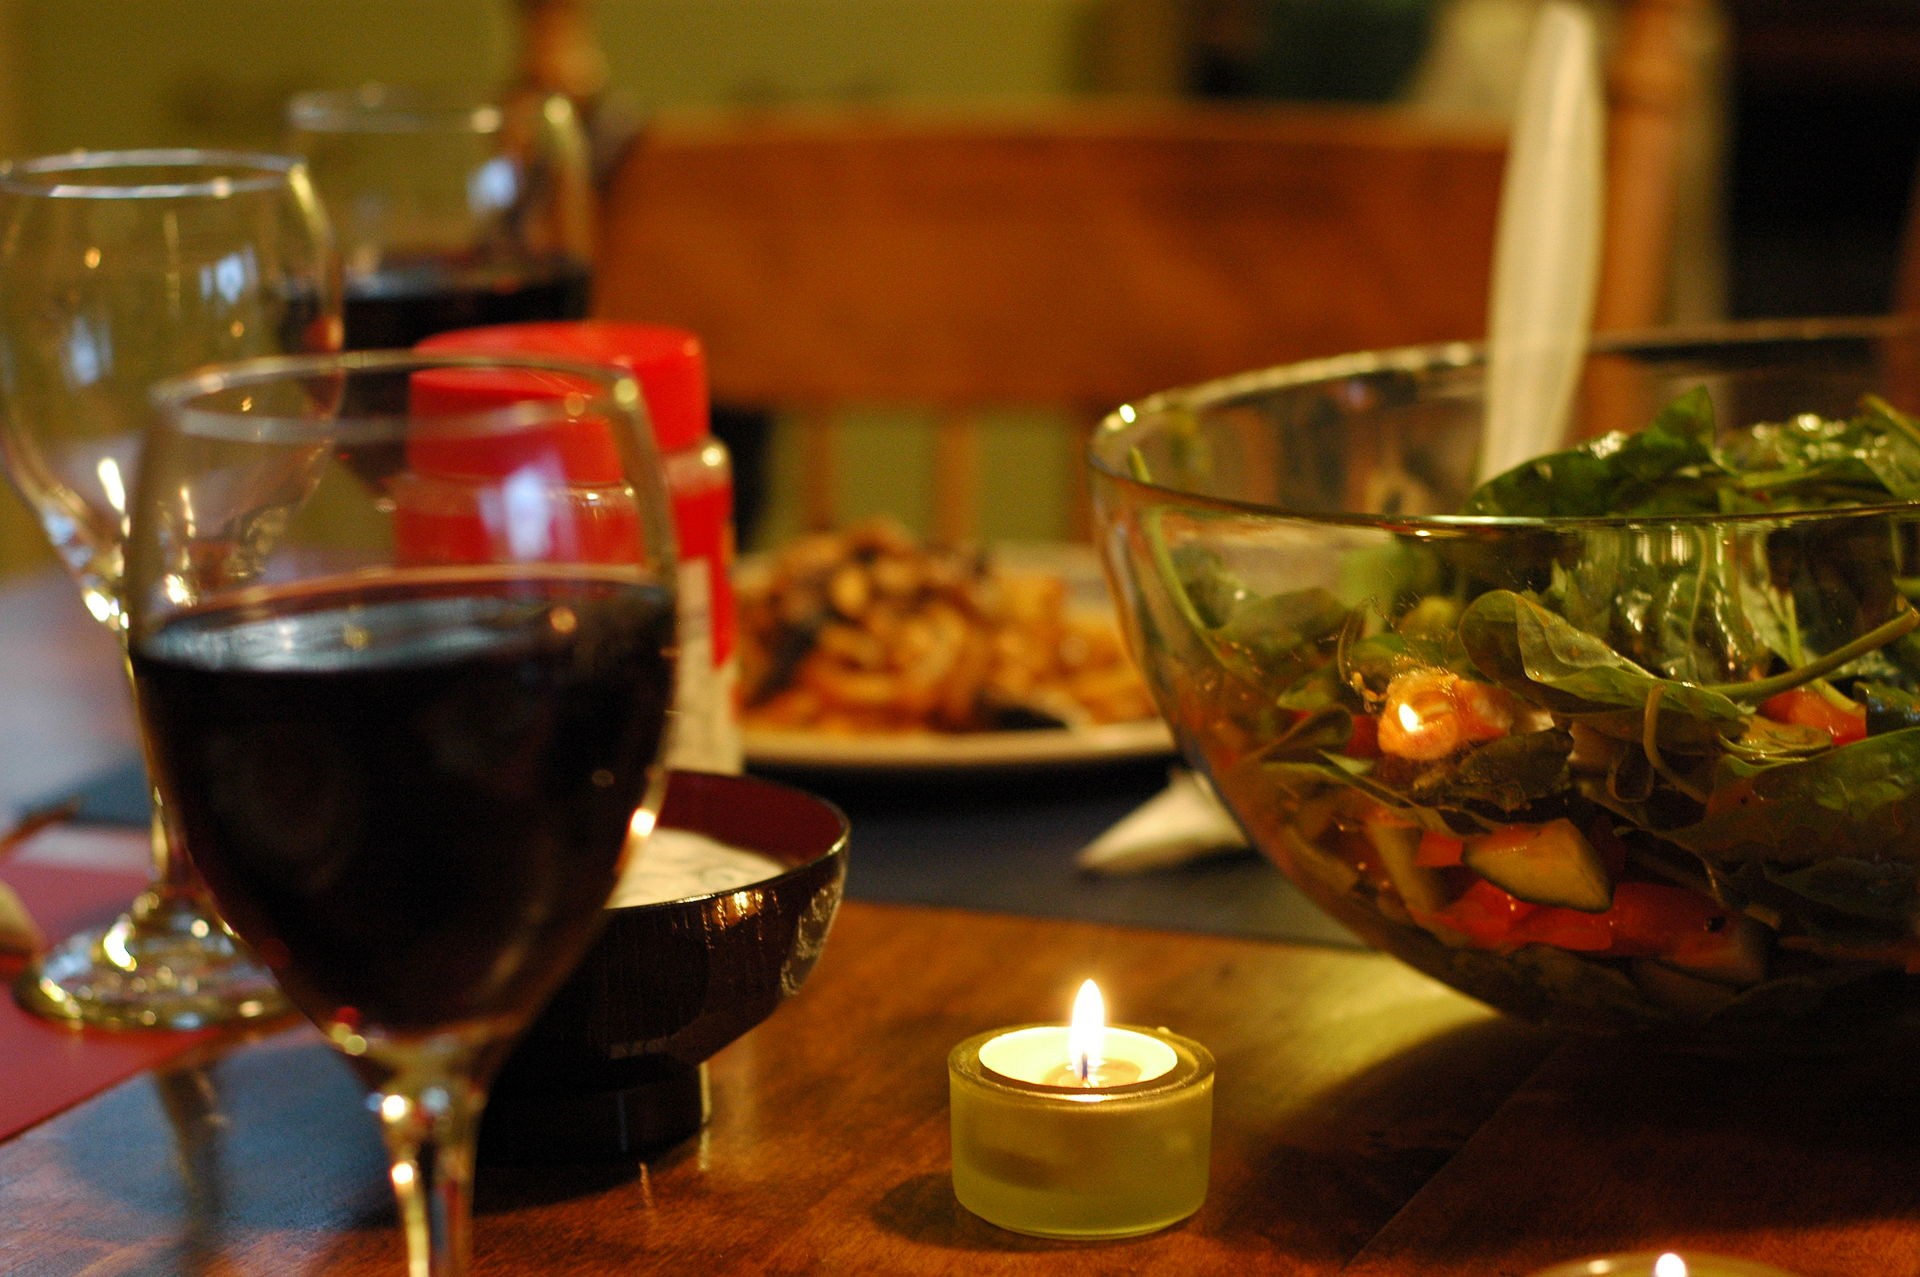 1920px-Moroccan_salad_and_wine.jpg